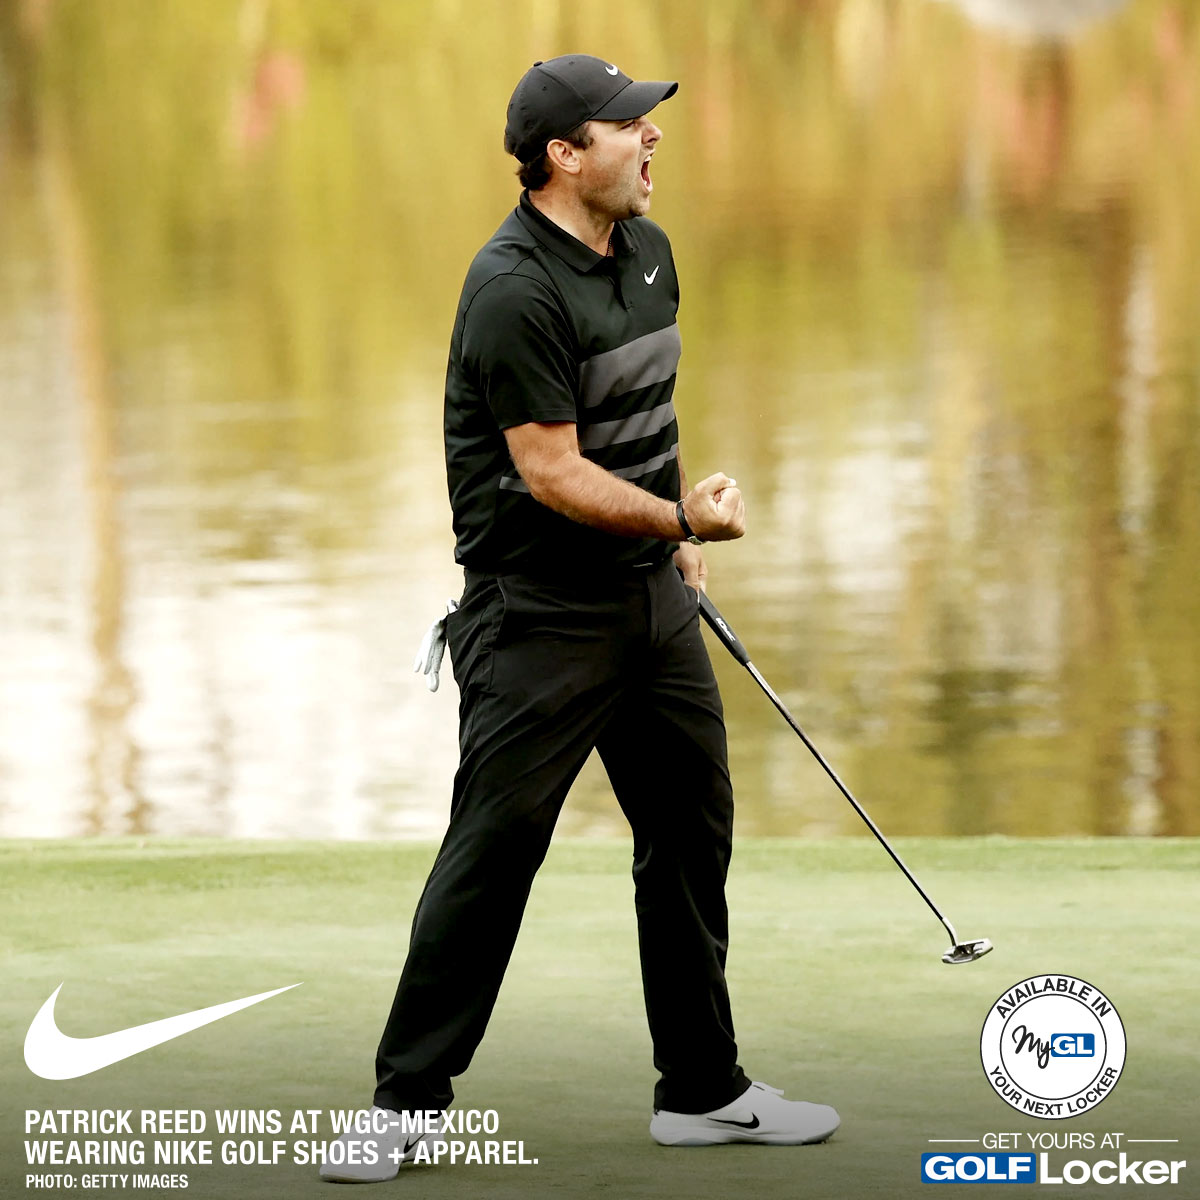 Patrick Reed wins the WGC-Mexico Championship wearing Nike Golf shoes and apparel.